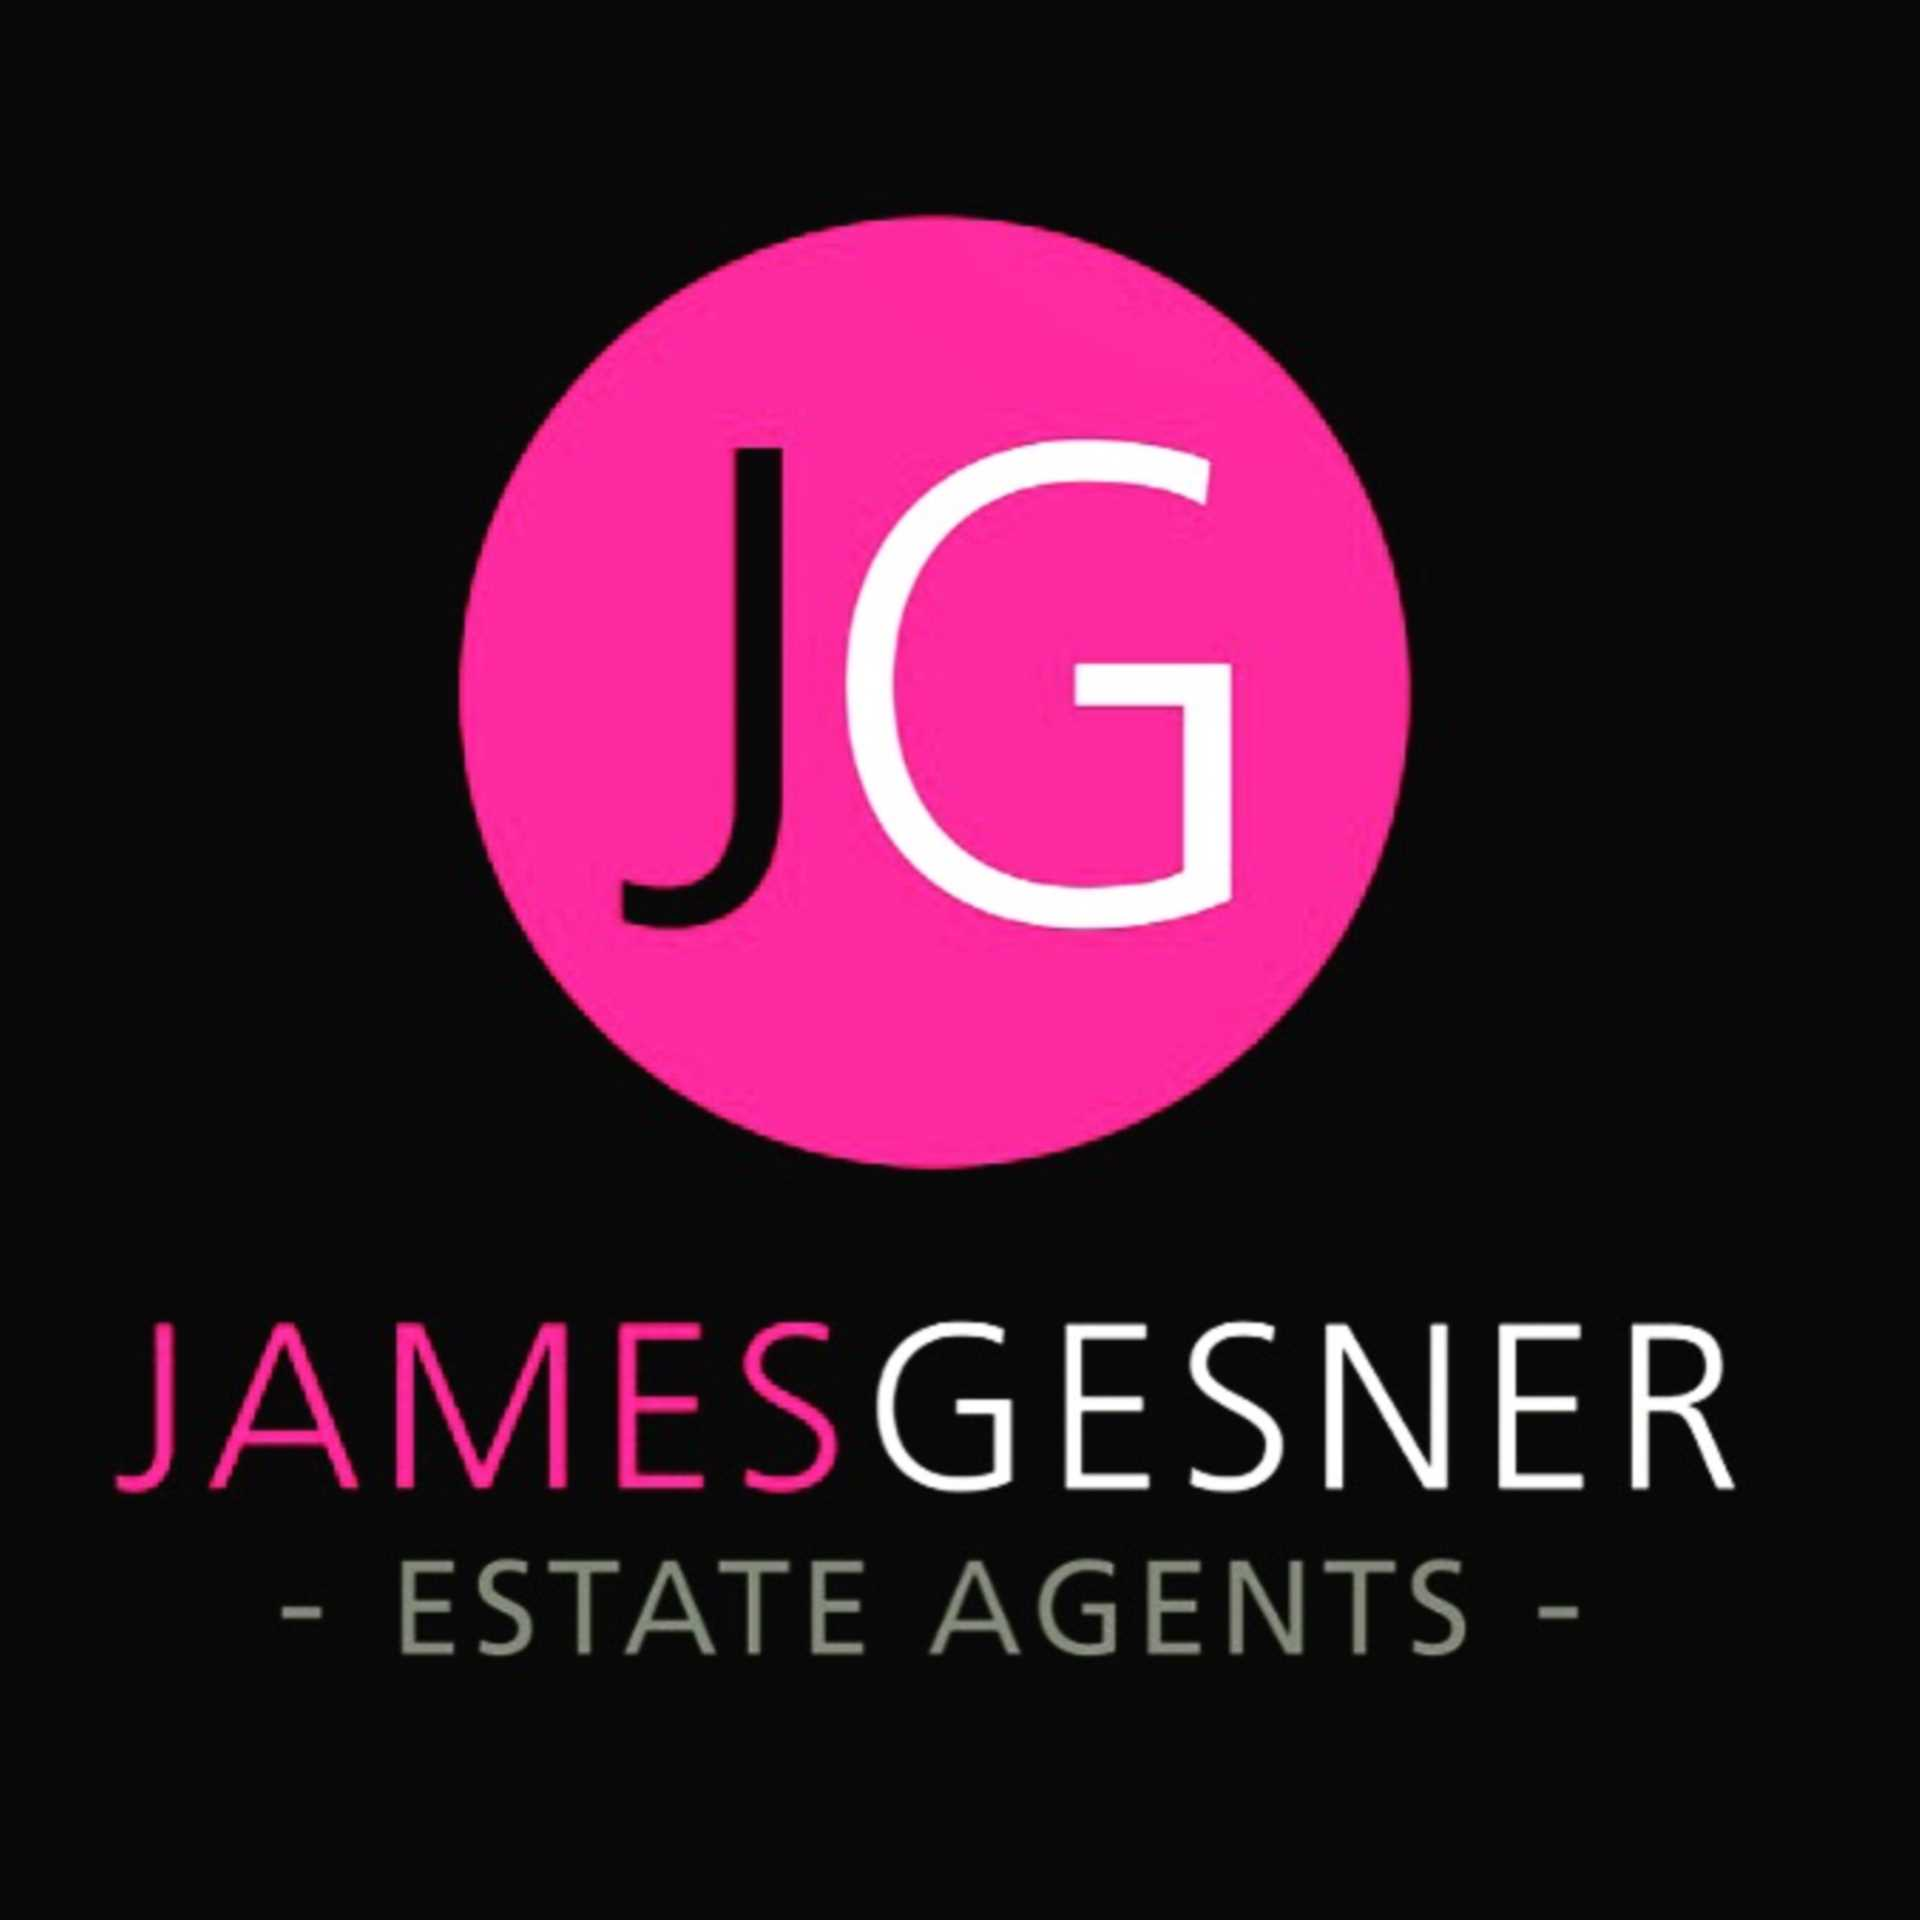 Team JG launches Videoette`s for sales and rental properties!